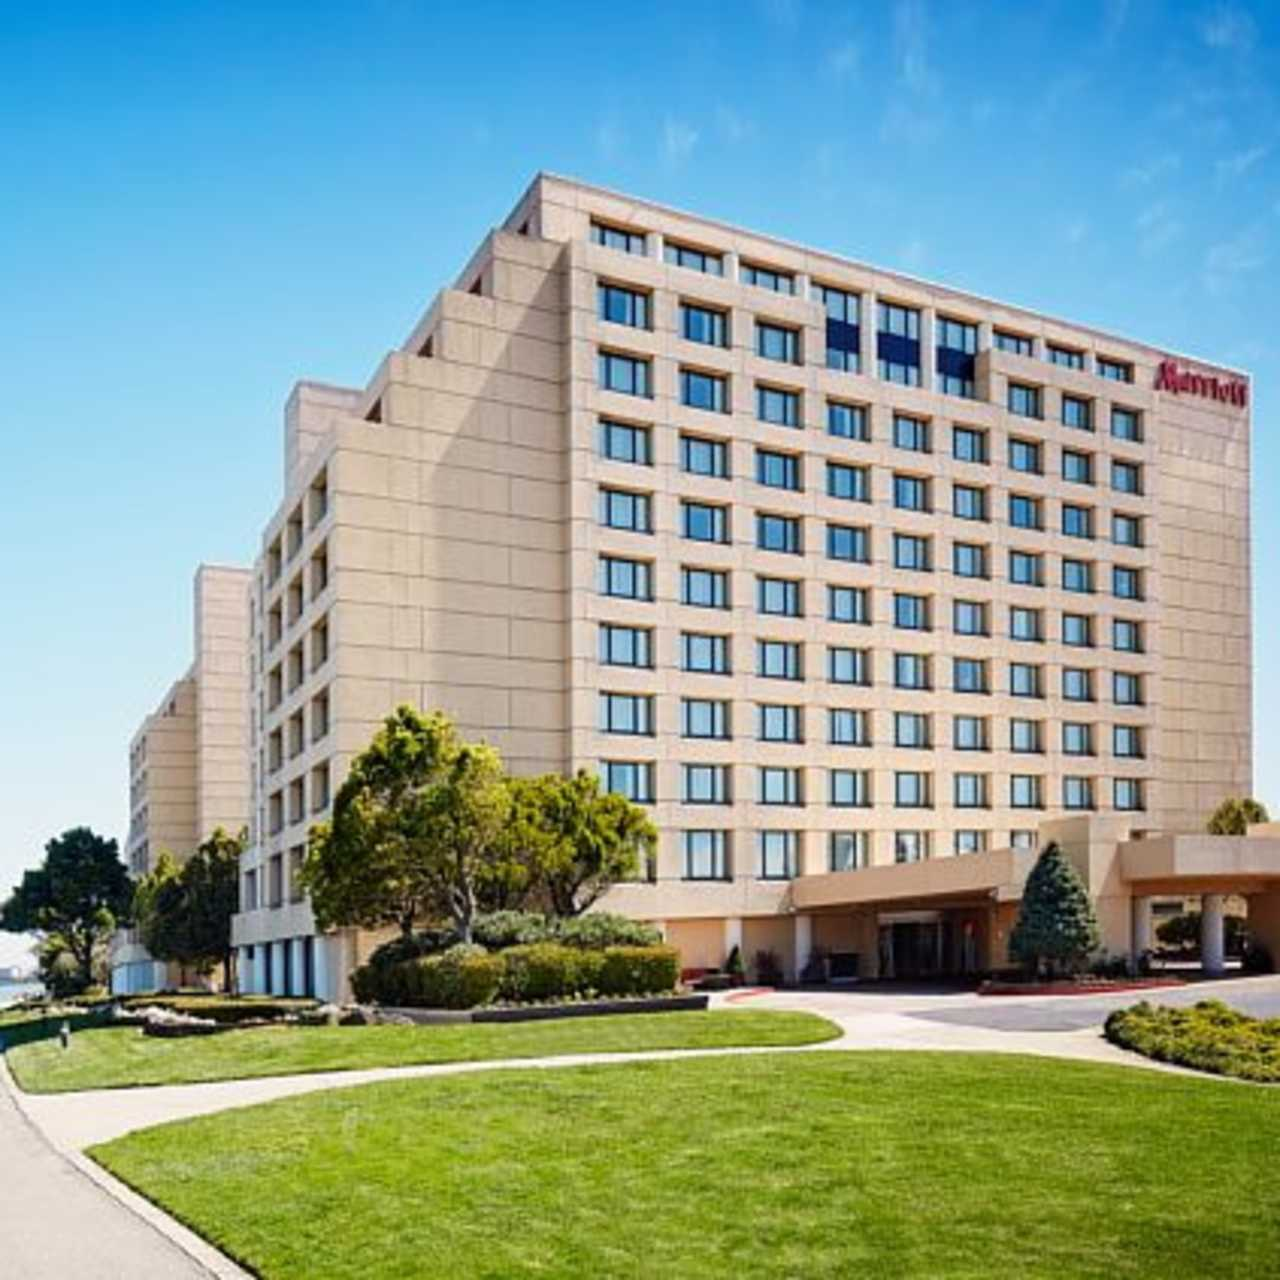 Hotels At San Francisco Airport With Shuttle Service